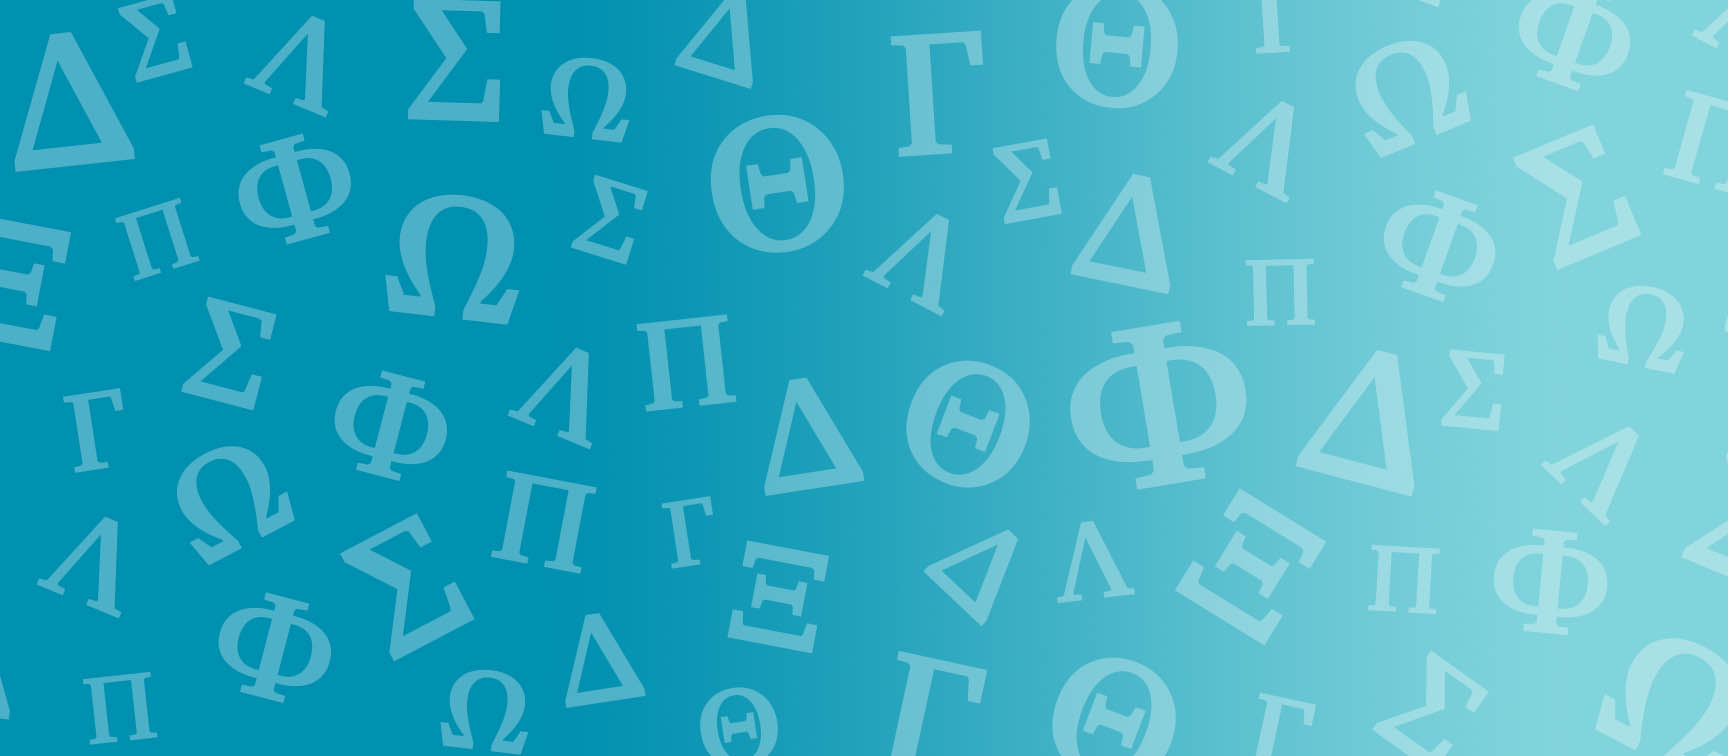 Greek letters on blue background